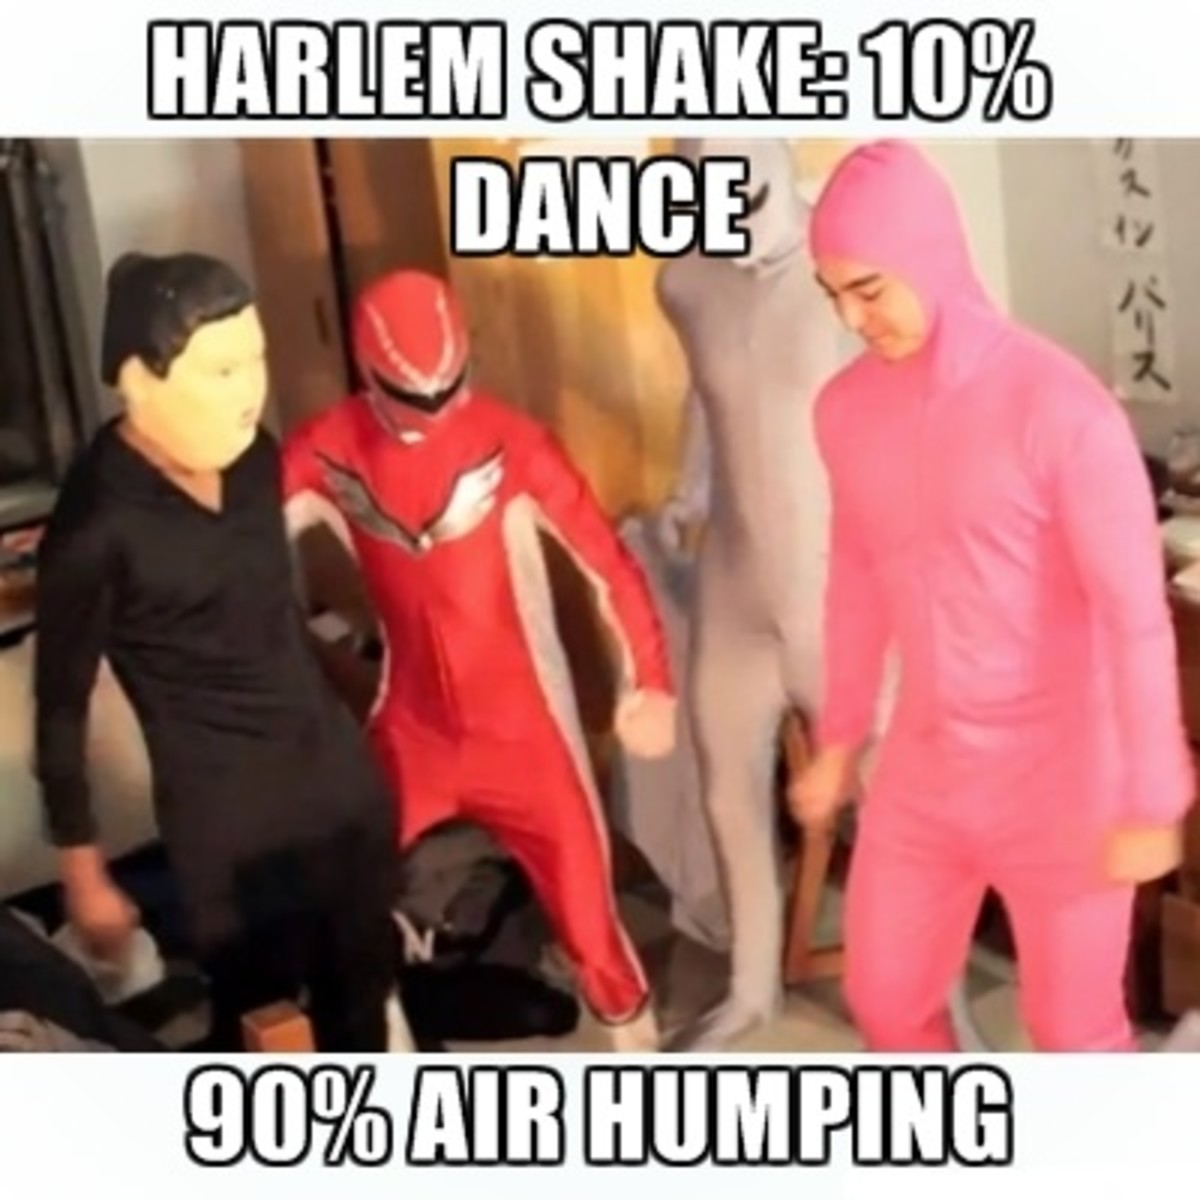 The Harlem Shake Bewitches the Modern Church